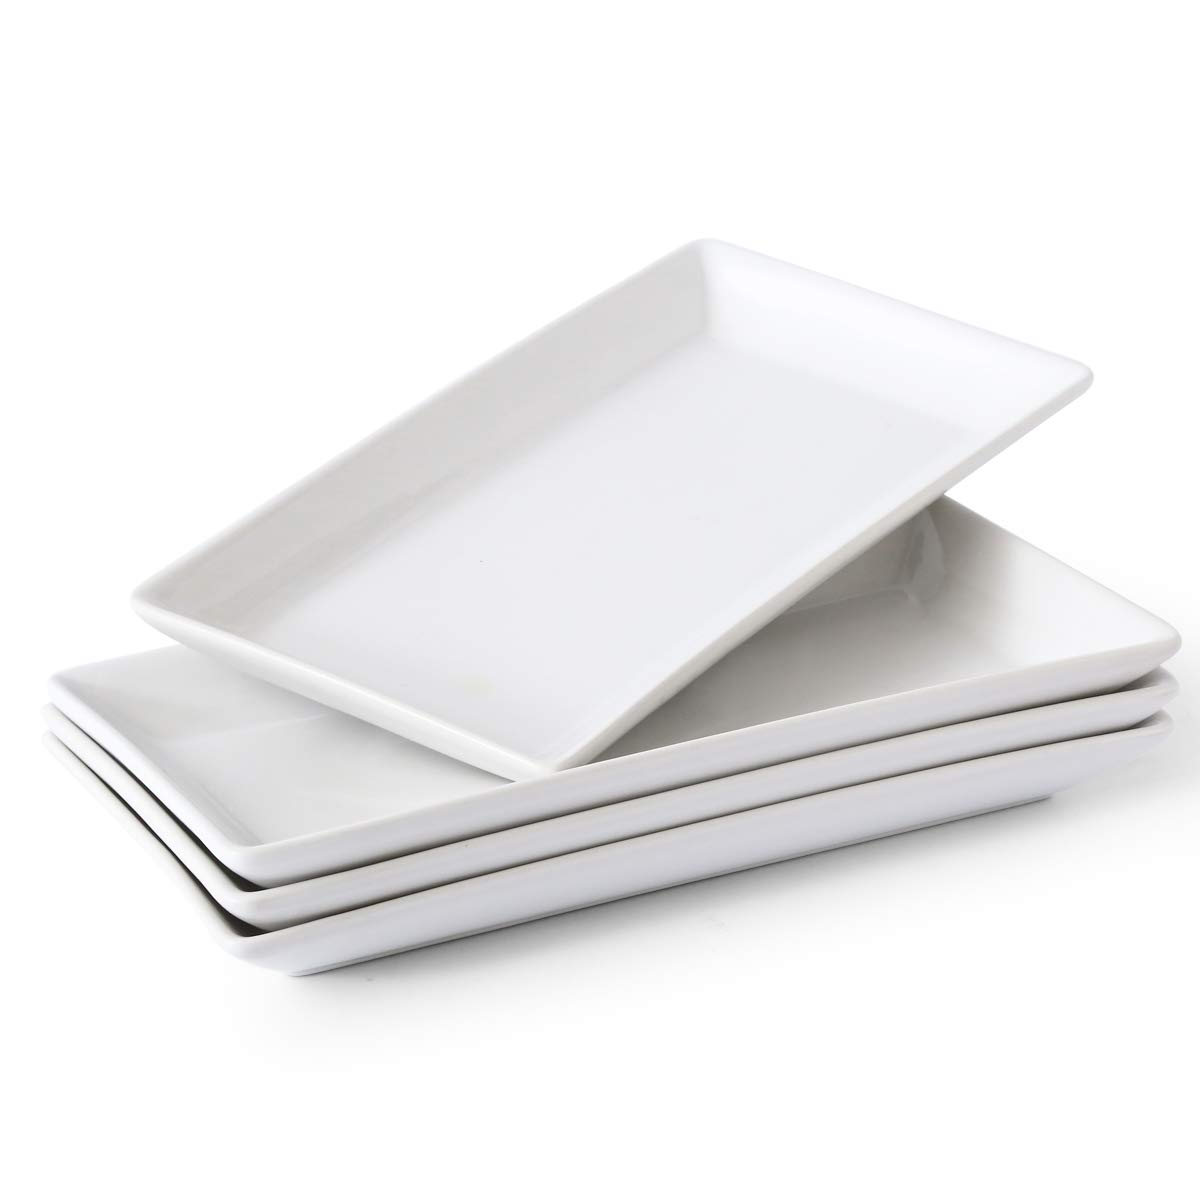 Porcelain Serving Platters Rectangular Trays for Party, Microwave And Dishwasher Safe Set of 4,12 inch